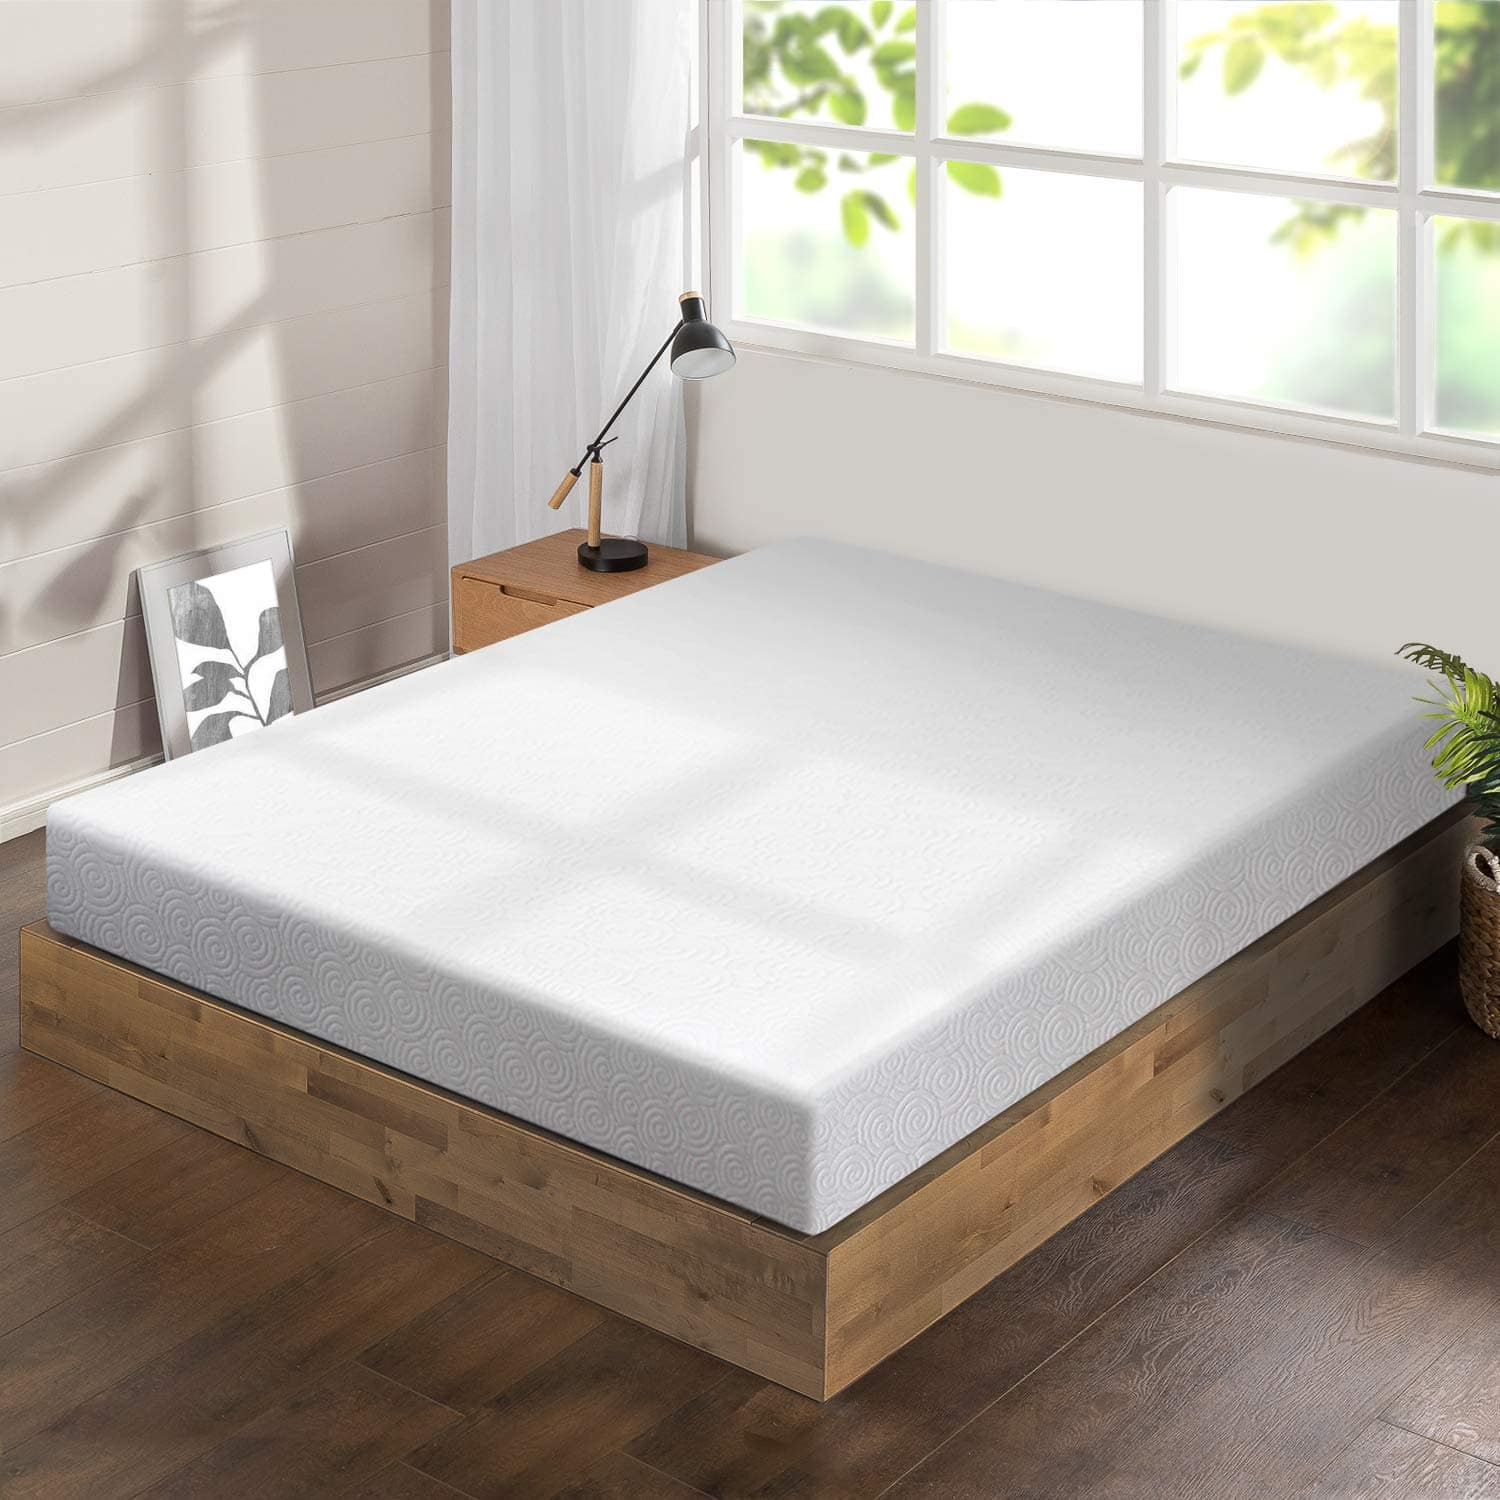 Best Price Mattress via Amazon: Queen-Size 7-Inch Gel Memory Foam Mattress for $225.00. Free Shipping.